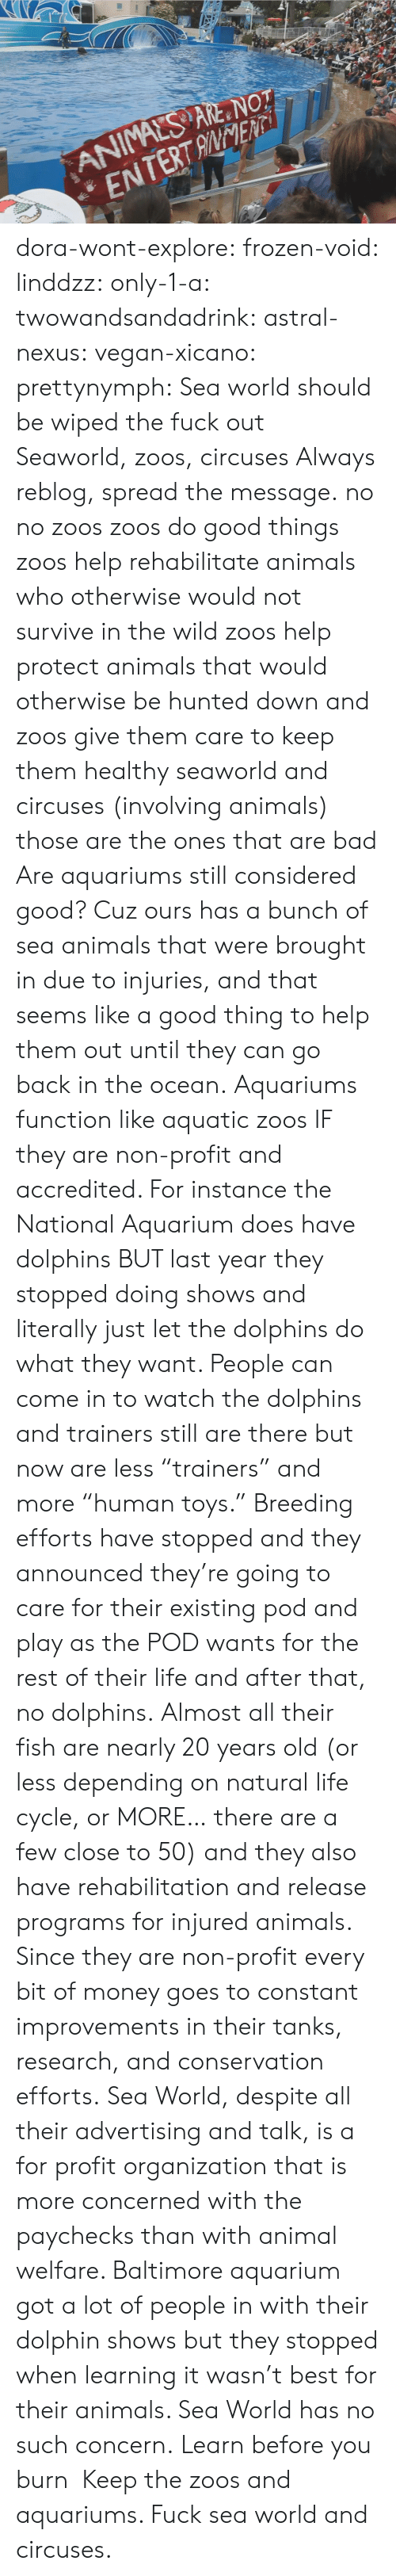 "Organization: ANIMALS ARE NOT  ENTERTANENTi dora-wont-explore:   frozen-void:  linddzz:  only-1-a:  twowandsandadrink:  astral-nexus:  vegan-xicano:  prettynymph:  Sea world should be wiped the fuck out  Seaworld, zoos, circuses  Always reblog, spread the message.  no no zoos zoos do good things zoos help rehabilitate animals who otherwise would not survive in the wild zoos help protect animals that would otherwise be hunted down and zoos give them care to keep them healthy seaworld and circuses (involving animals) those are the ones that are bad  Are aquariums still considered good? Cuz ours has a bunch of sea animals that were brought in due to injuries, and that seems like a good thing to help them out until they can go back in the ocean.  Aquariums function like aquatic zoos IF they are non-profit and accredited. For instance the National Aquarium does have dolphins BUT last year they stopped doing shows and literally just let the dolphins do what they want. People can come in to watch the dolphins and trainers still are there but now are less ""trainers"" and more ""human toys."" Breeding efforts have stopped and they announced they're going to care for their existing pod and play as the POD wants for the rest of their life and after that, no dolphins. Almost all their fish are nearly 20 years old (or less depending on natural life cycle, or MORE… there are a few close to 50) and they also have rehabilitation and release programs for injured animals. Since they are non-profit every bit of money goes to constant improvements in their tanks, research, and conservation efforts. Sea World, despite all their advertising and talk, is a for profit organization that is more concerned with the paychecks than with animal welfare. Baltimore aquarium got a lot of people in with their dolphin shows but they stopped when learning it wasn't best for their animals. Sea World has no such concern.  Learn before you burn   Keep the zoos and aquariums. Fuck sea world and circuses."